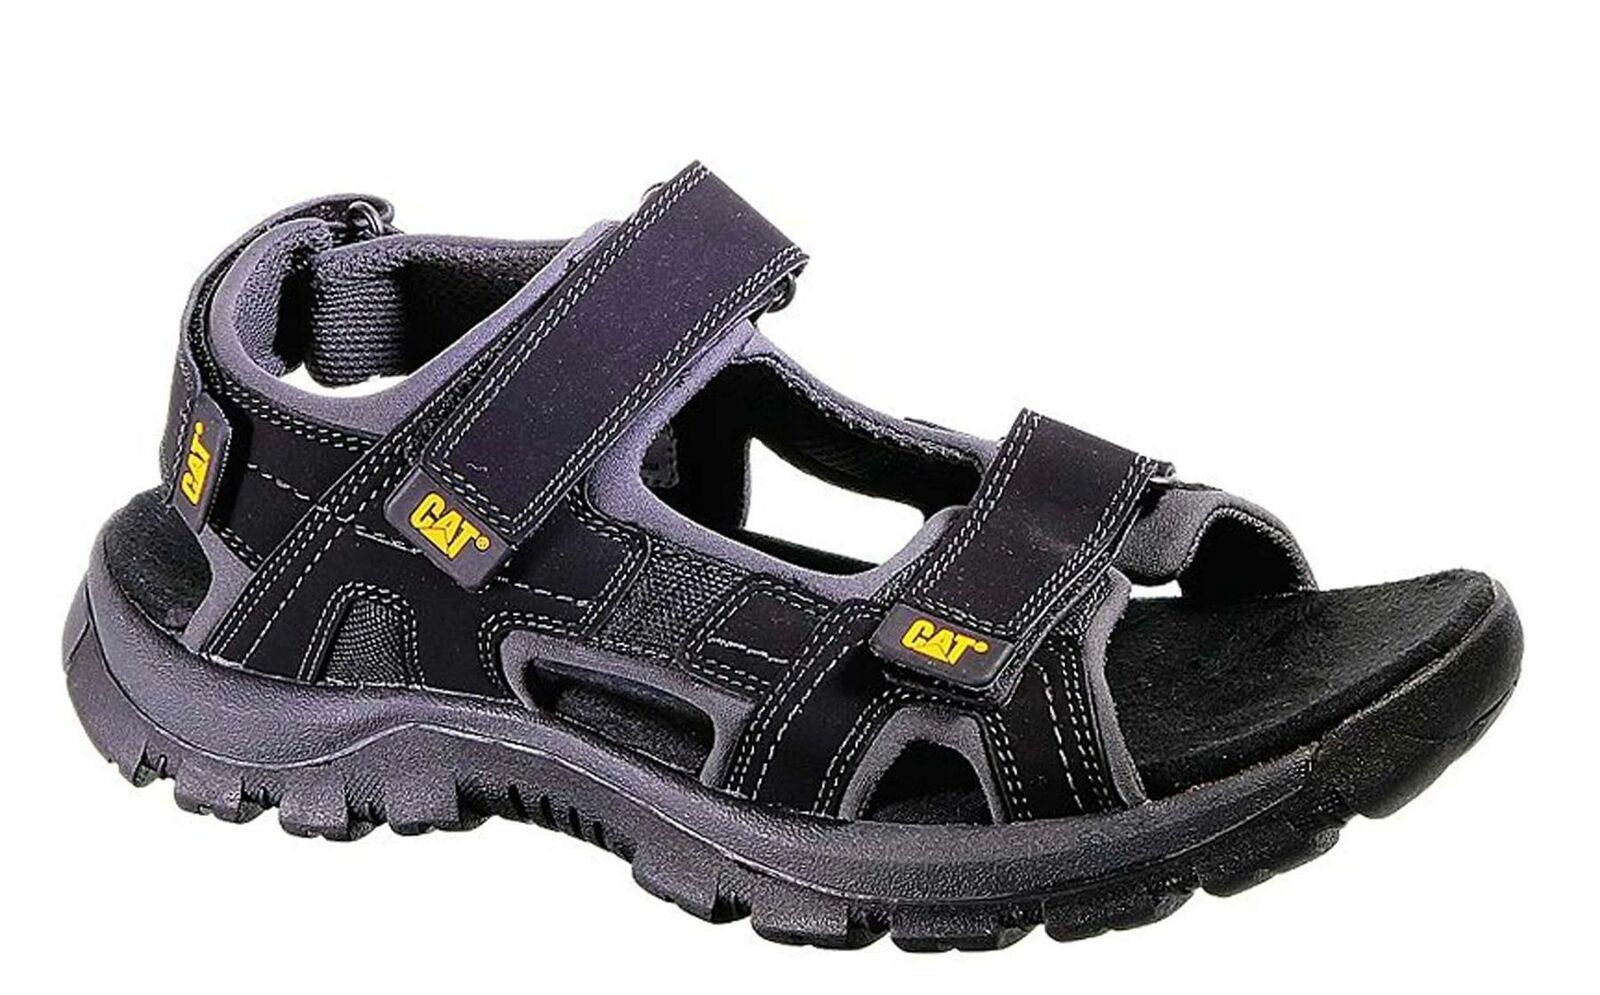 CAT Mens Wide Fit Giles Rugged And Durable Sandals in Black